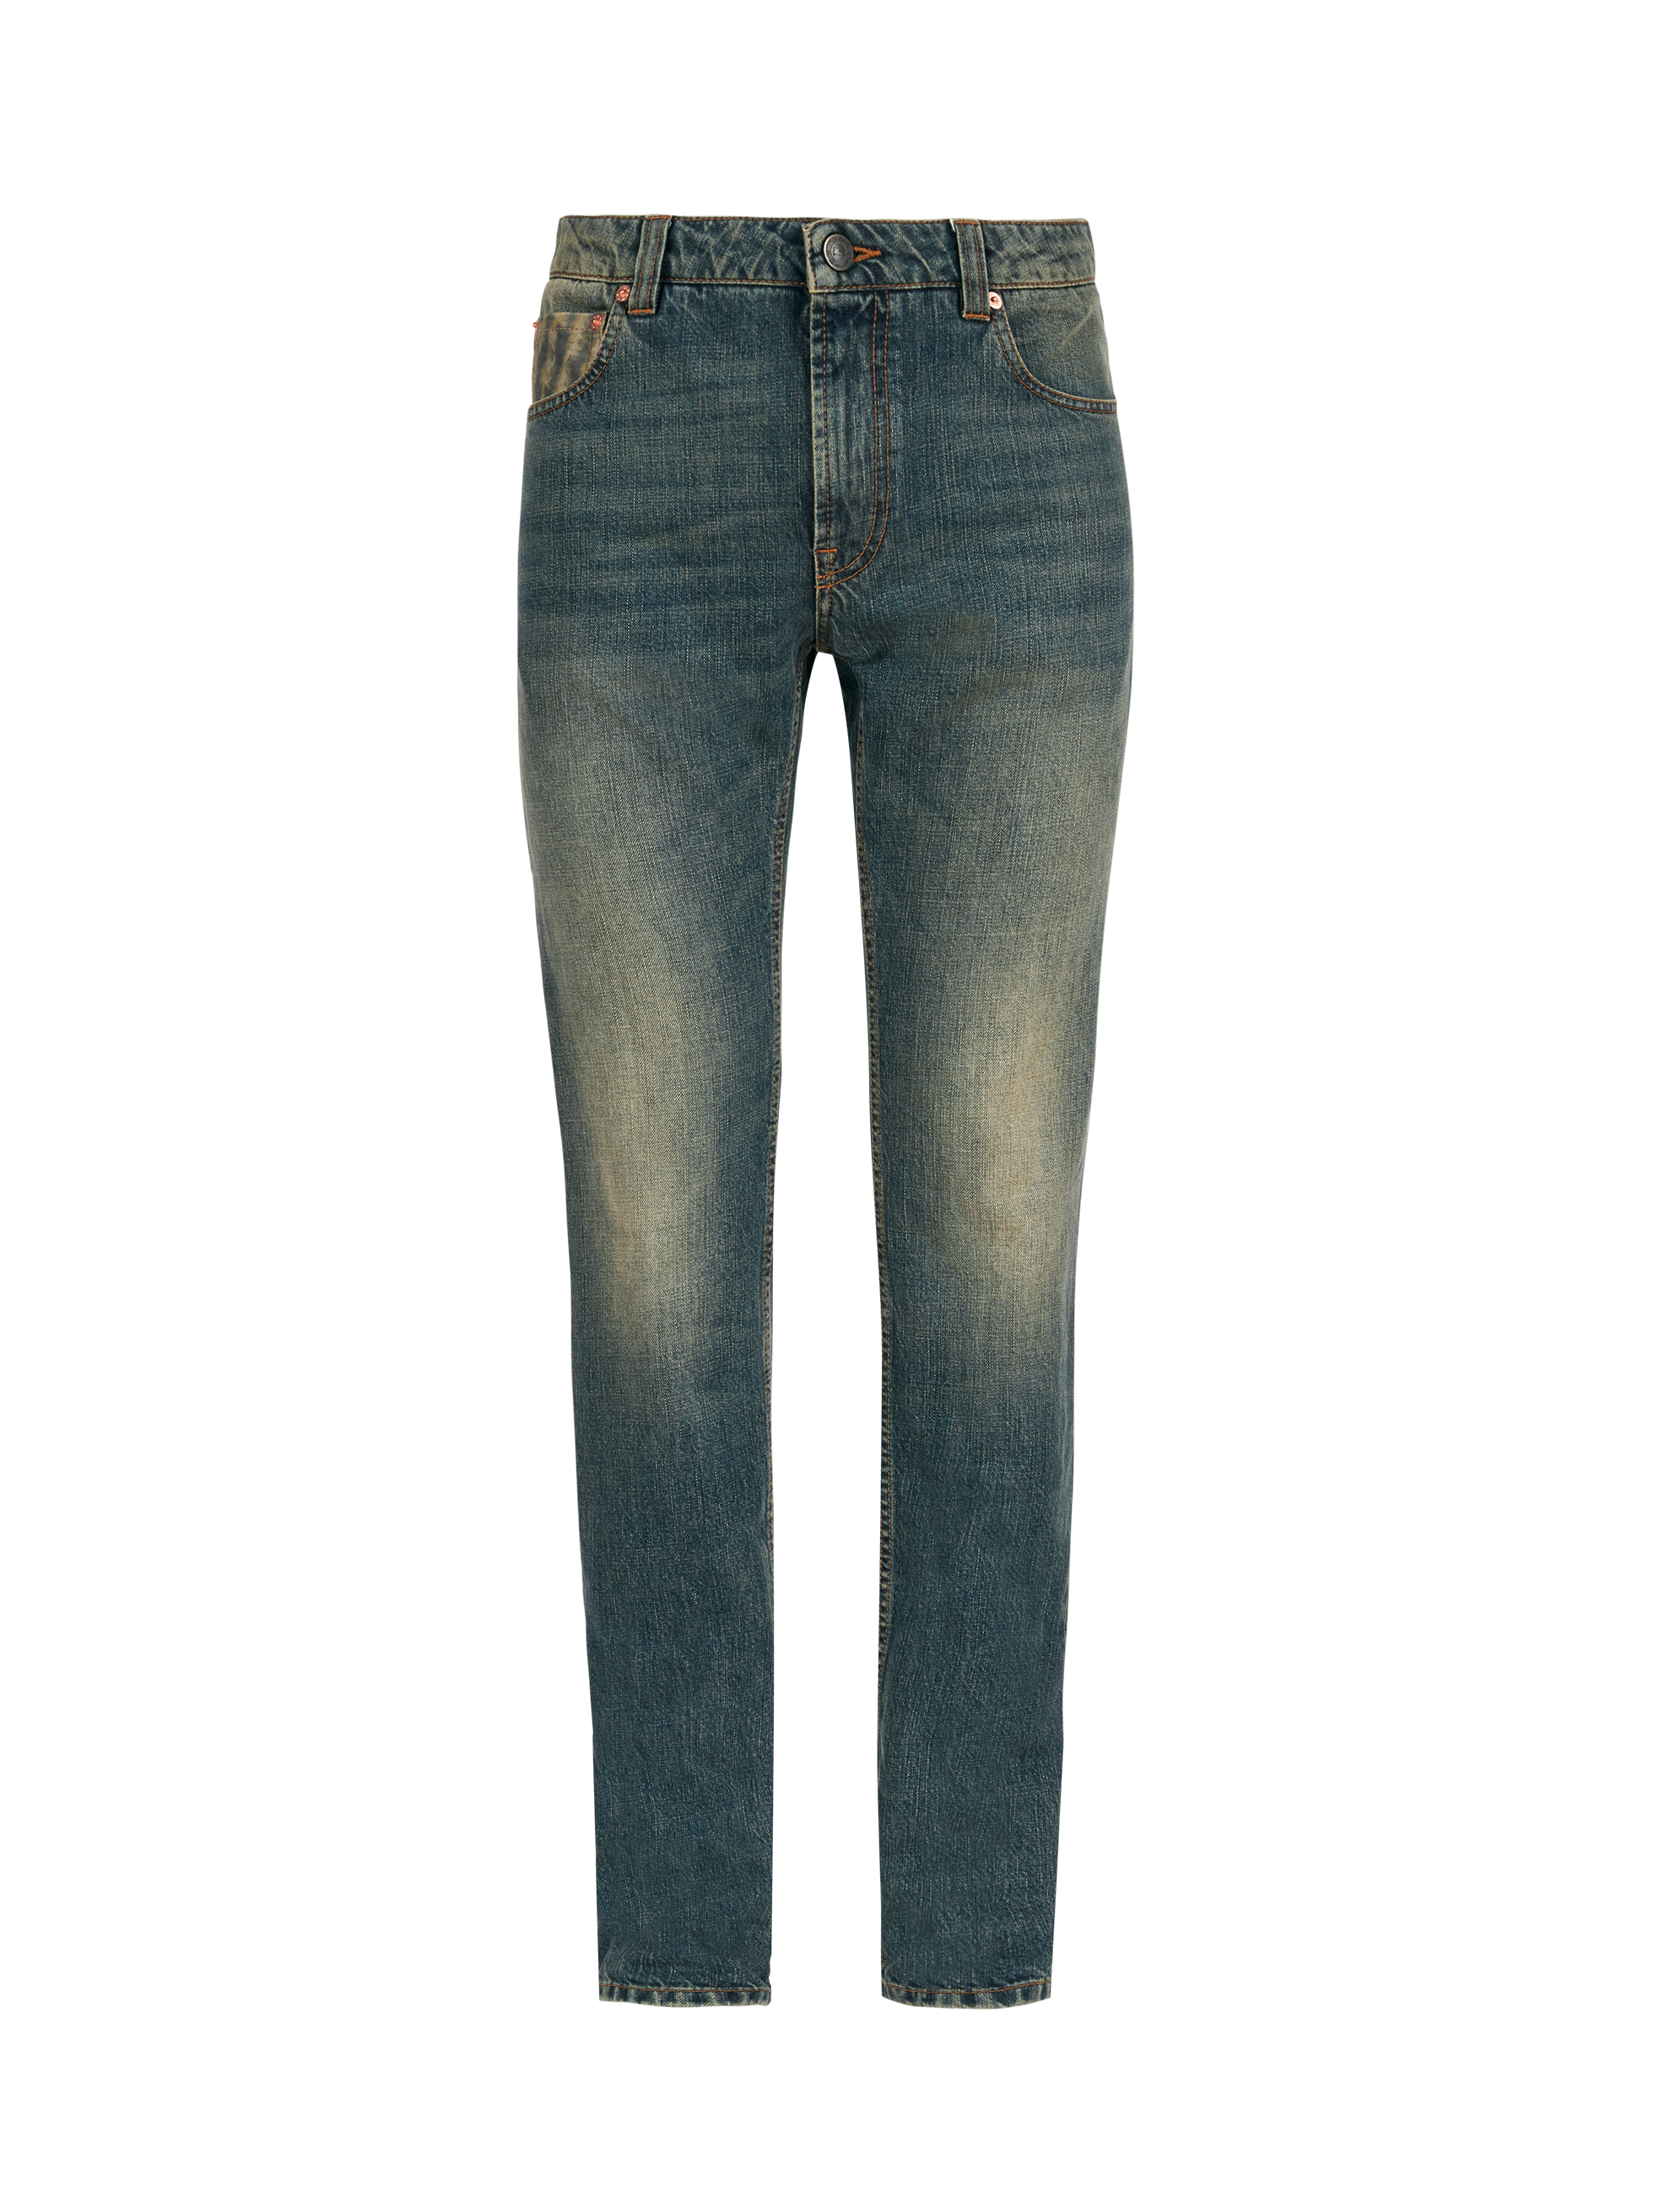 JEANS WITH EMBROIDERED TIGER